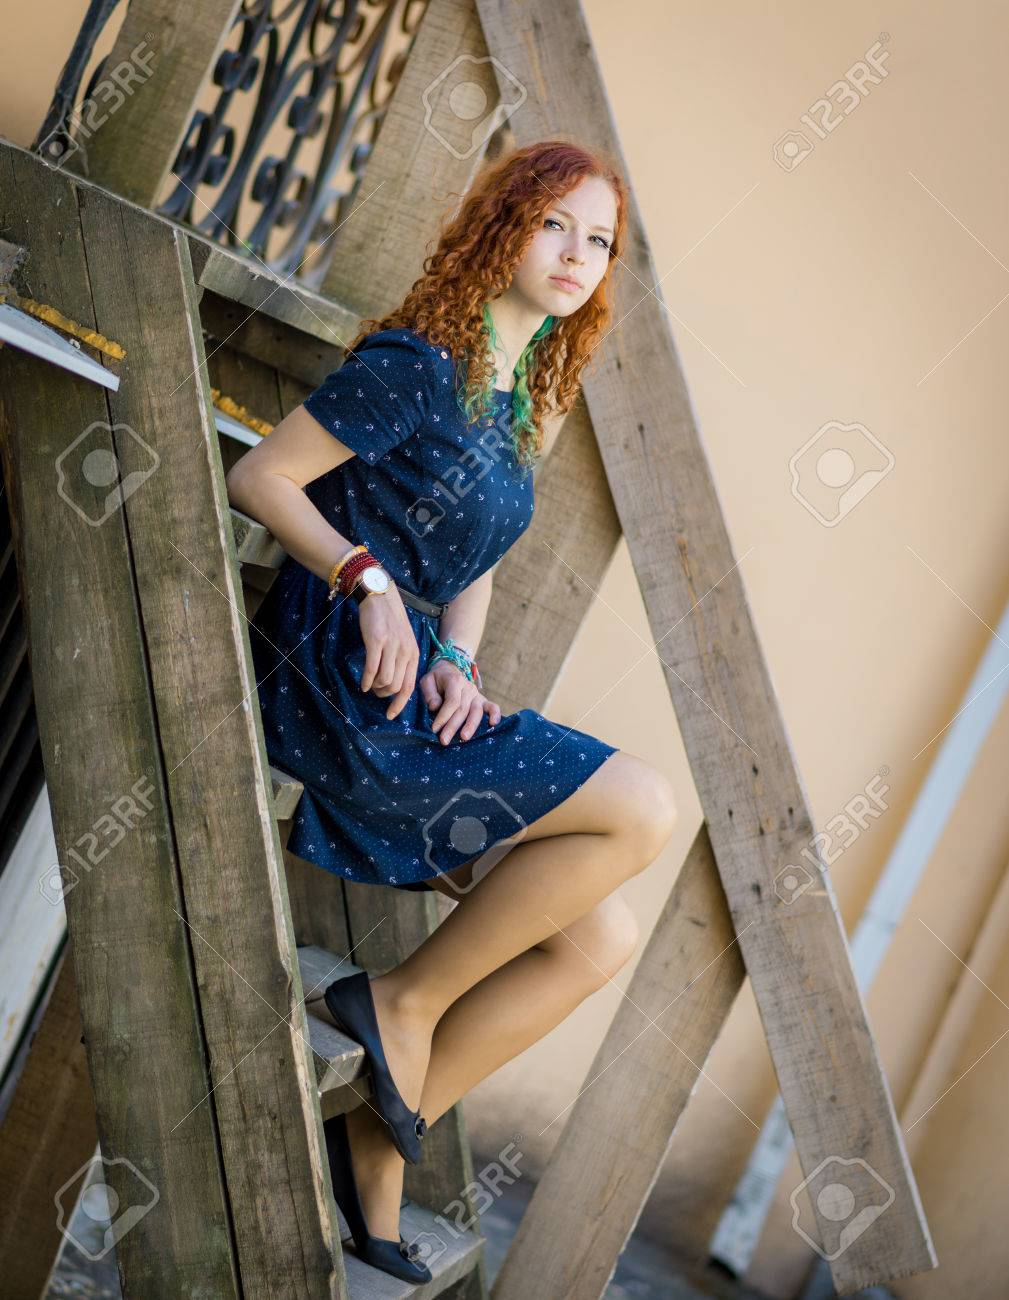 Beautiful Redhead Girl Sitting On Old Wooden Stairs Soft Focus